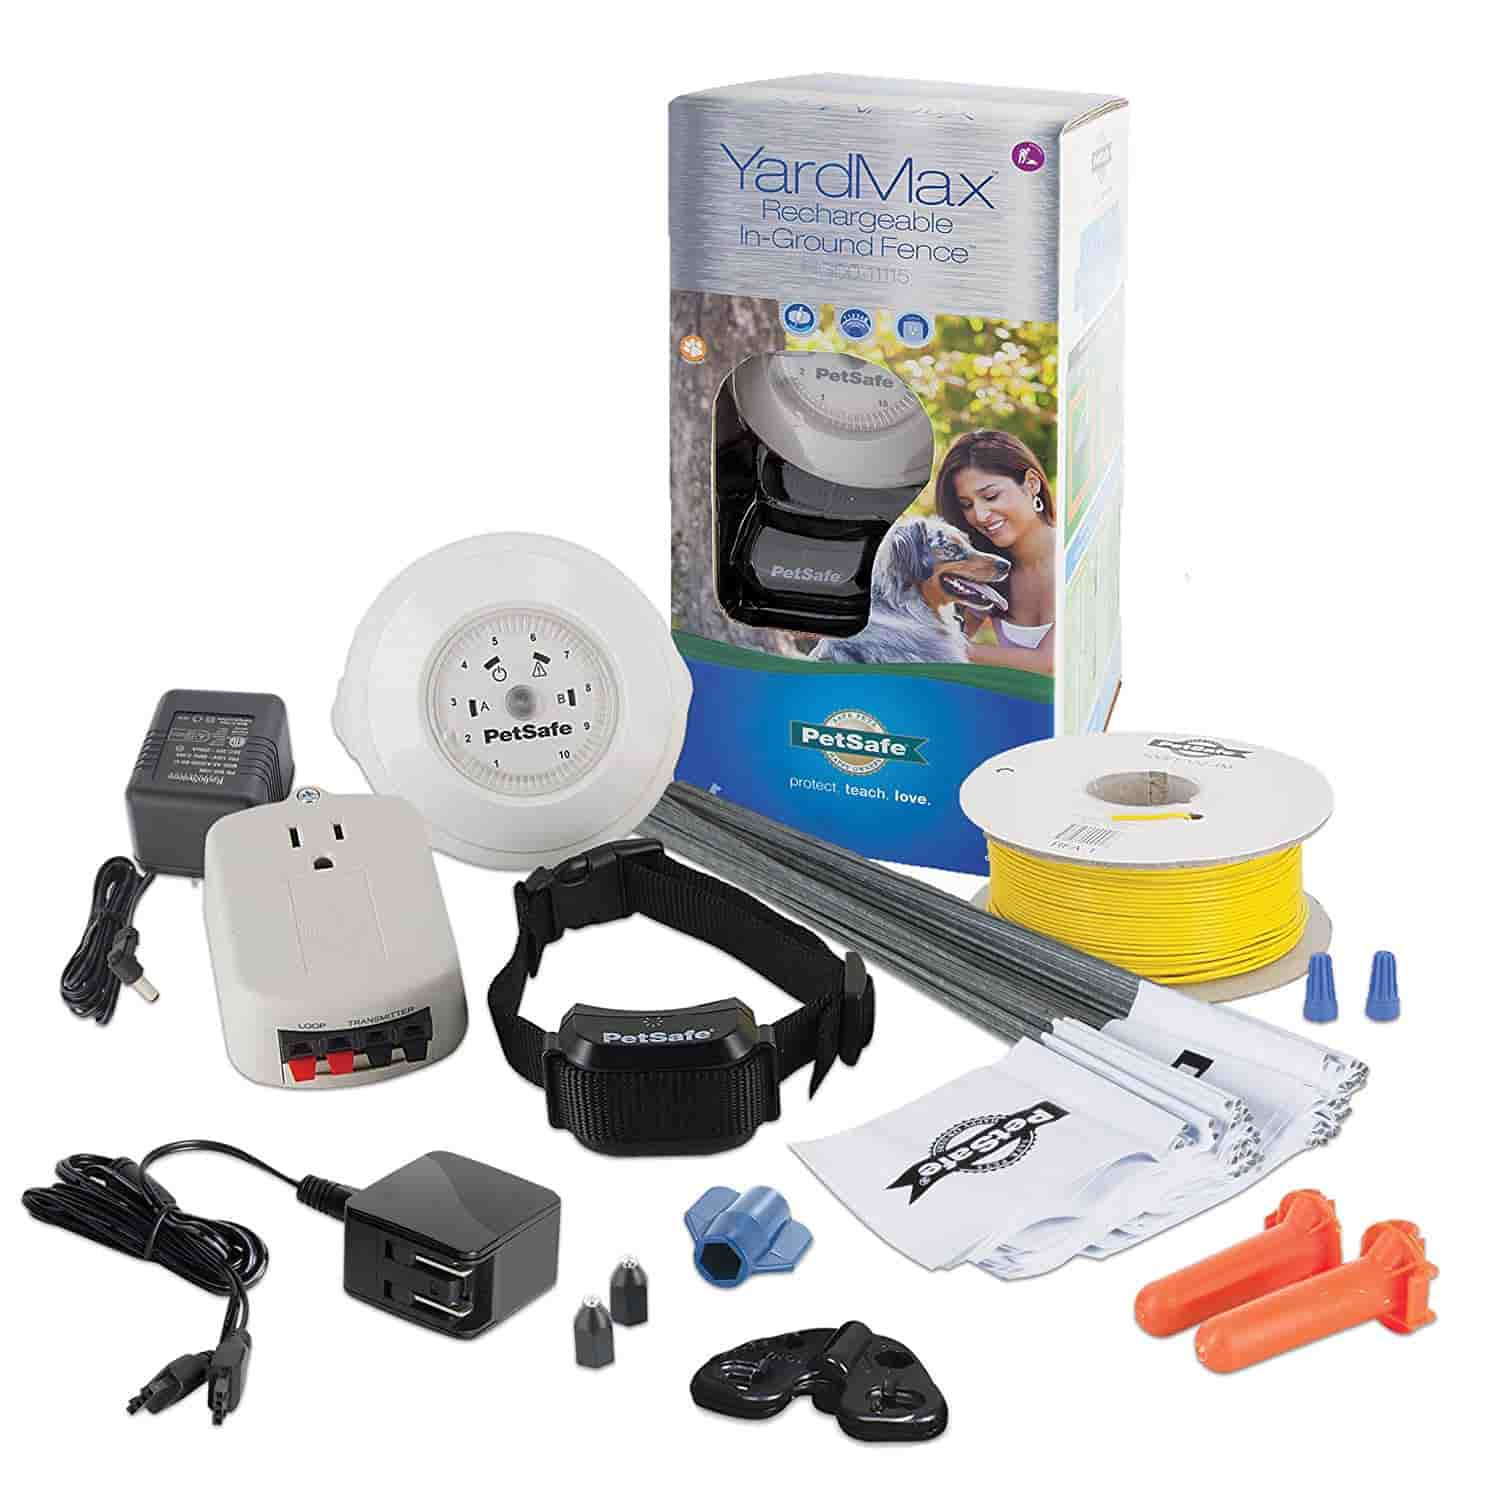 PetSafe Yardmax Rechargeable In-Ground Pet Fencing System Image